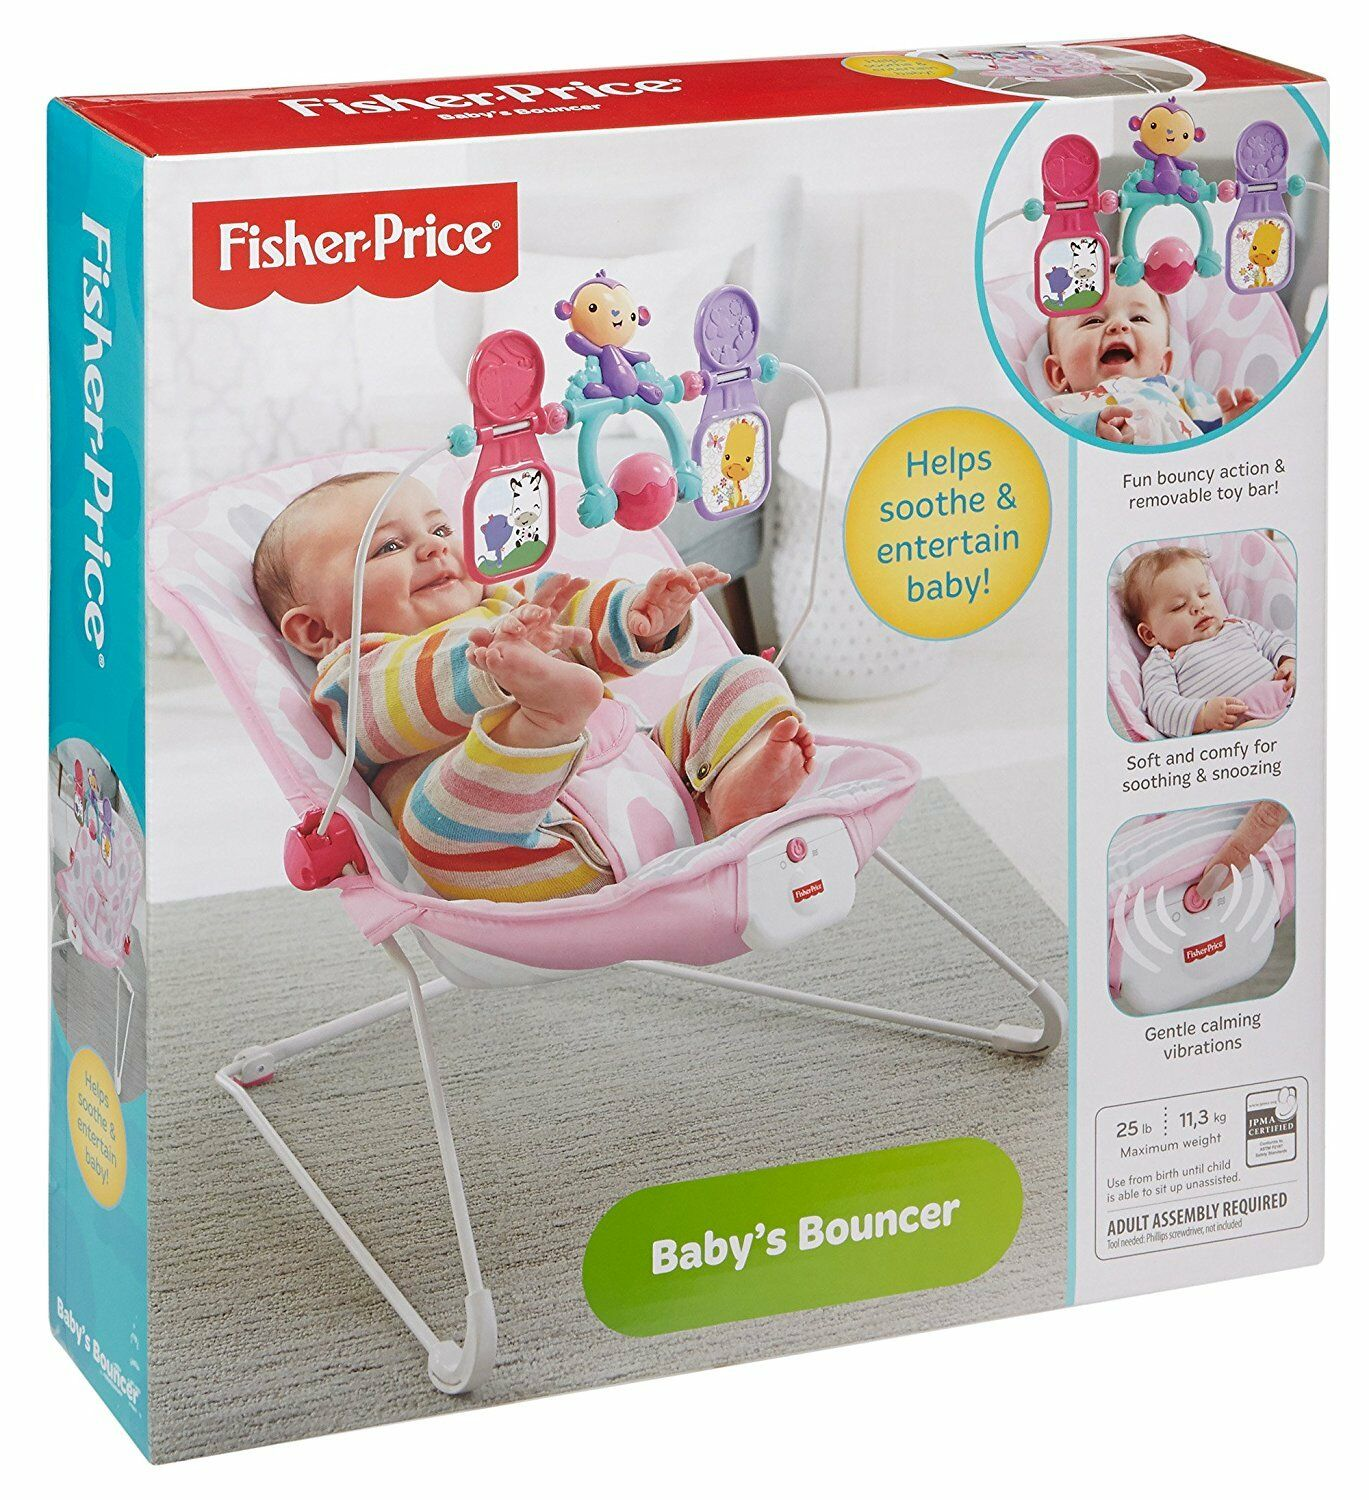 Uncategorized fisher price comfort curve bouncer new free shipping ebay - 33